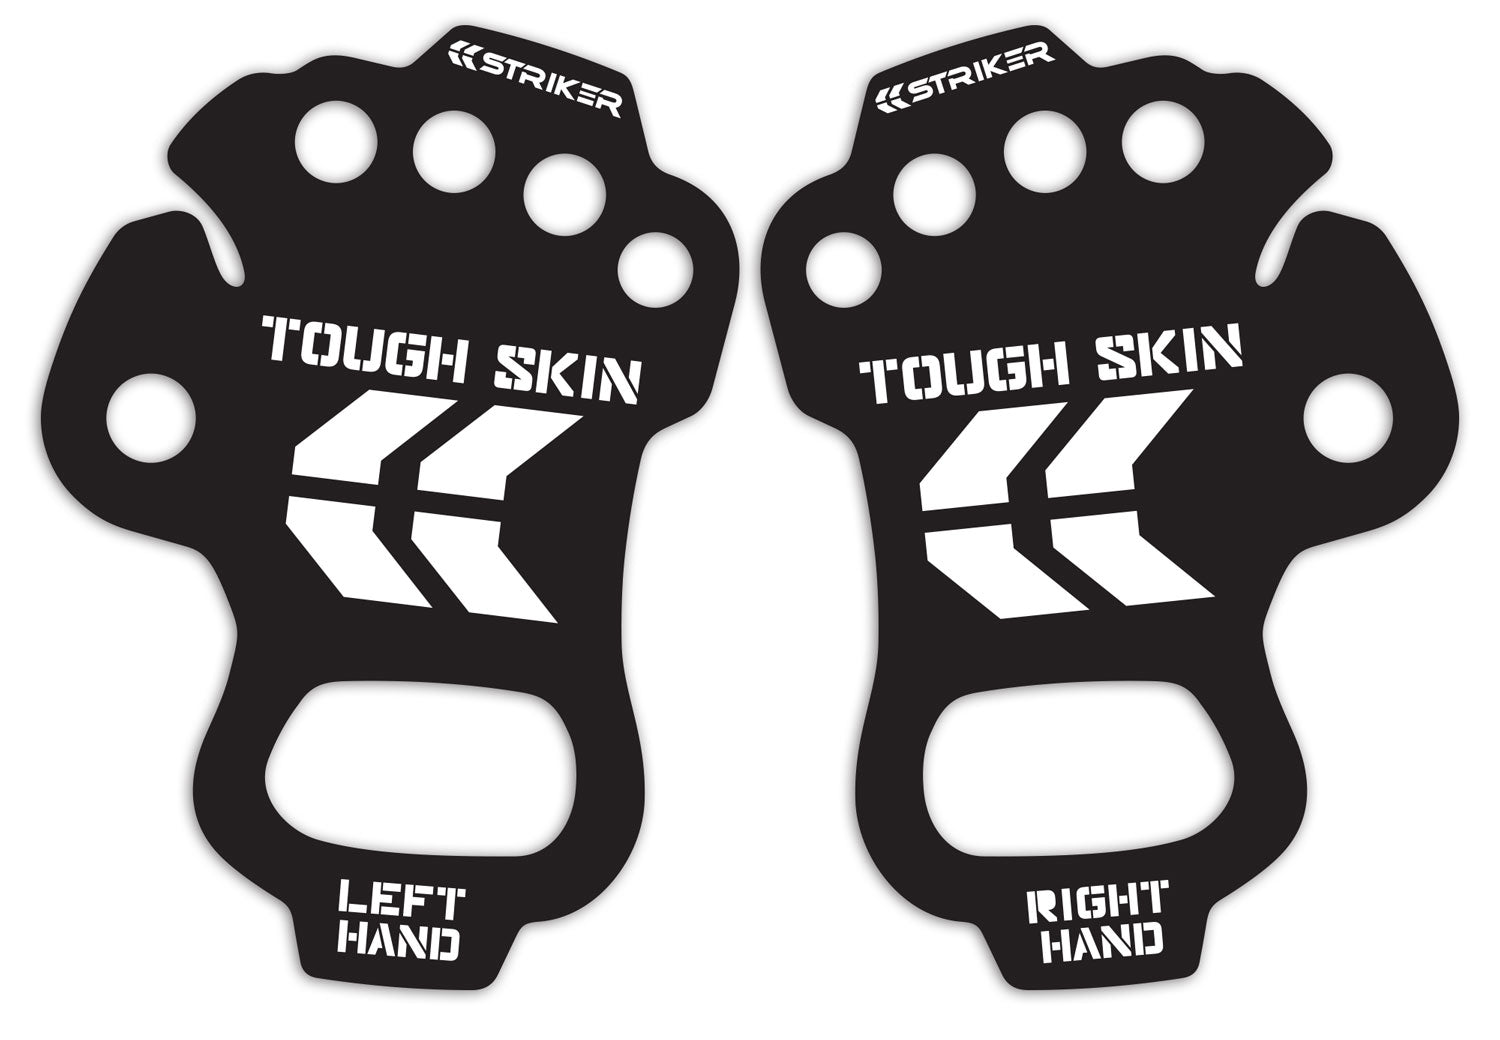 Striker Tough Skin pair included in packaging